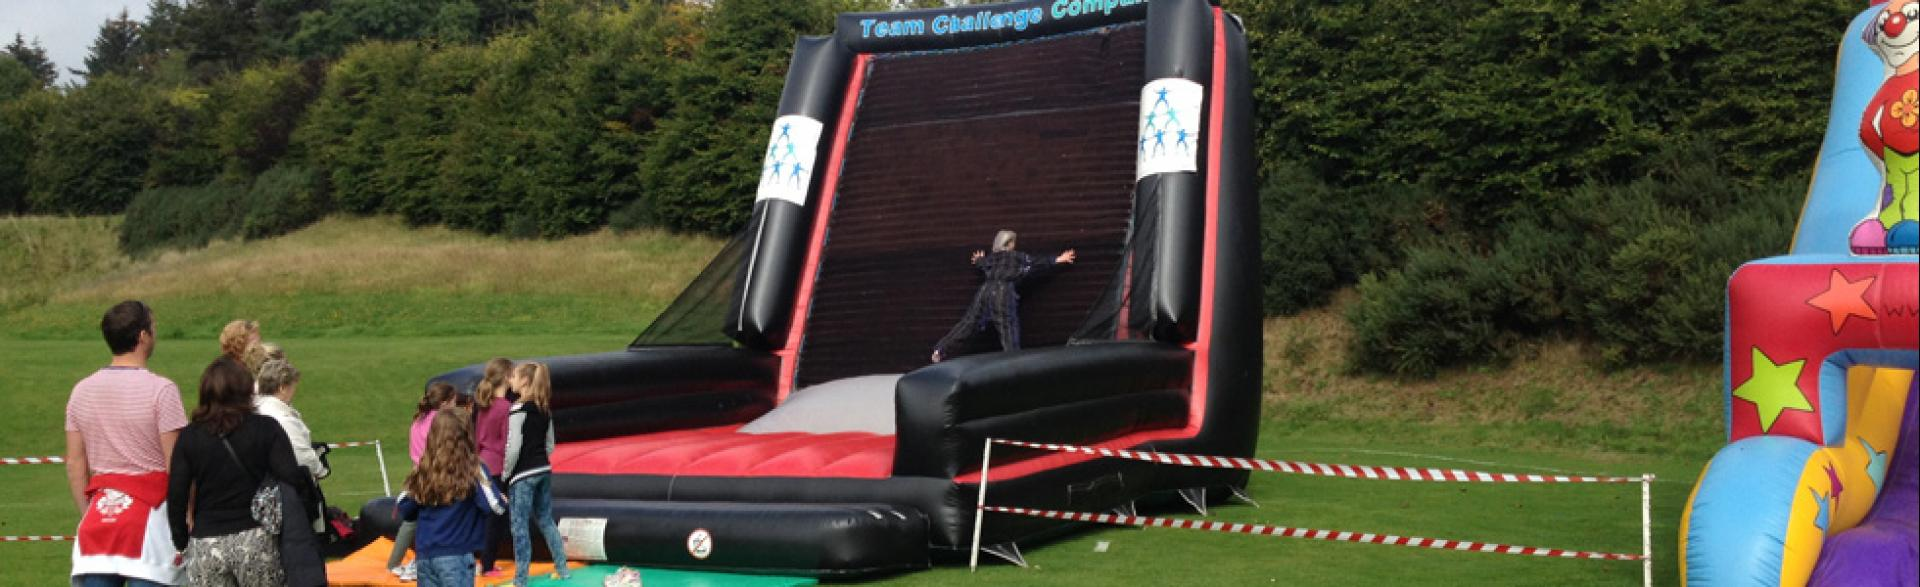 Corporate Fun Days, Aberdeen, September 2014